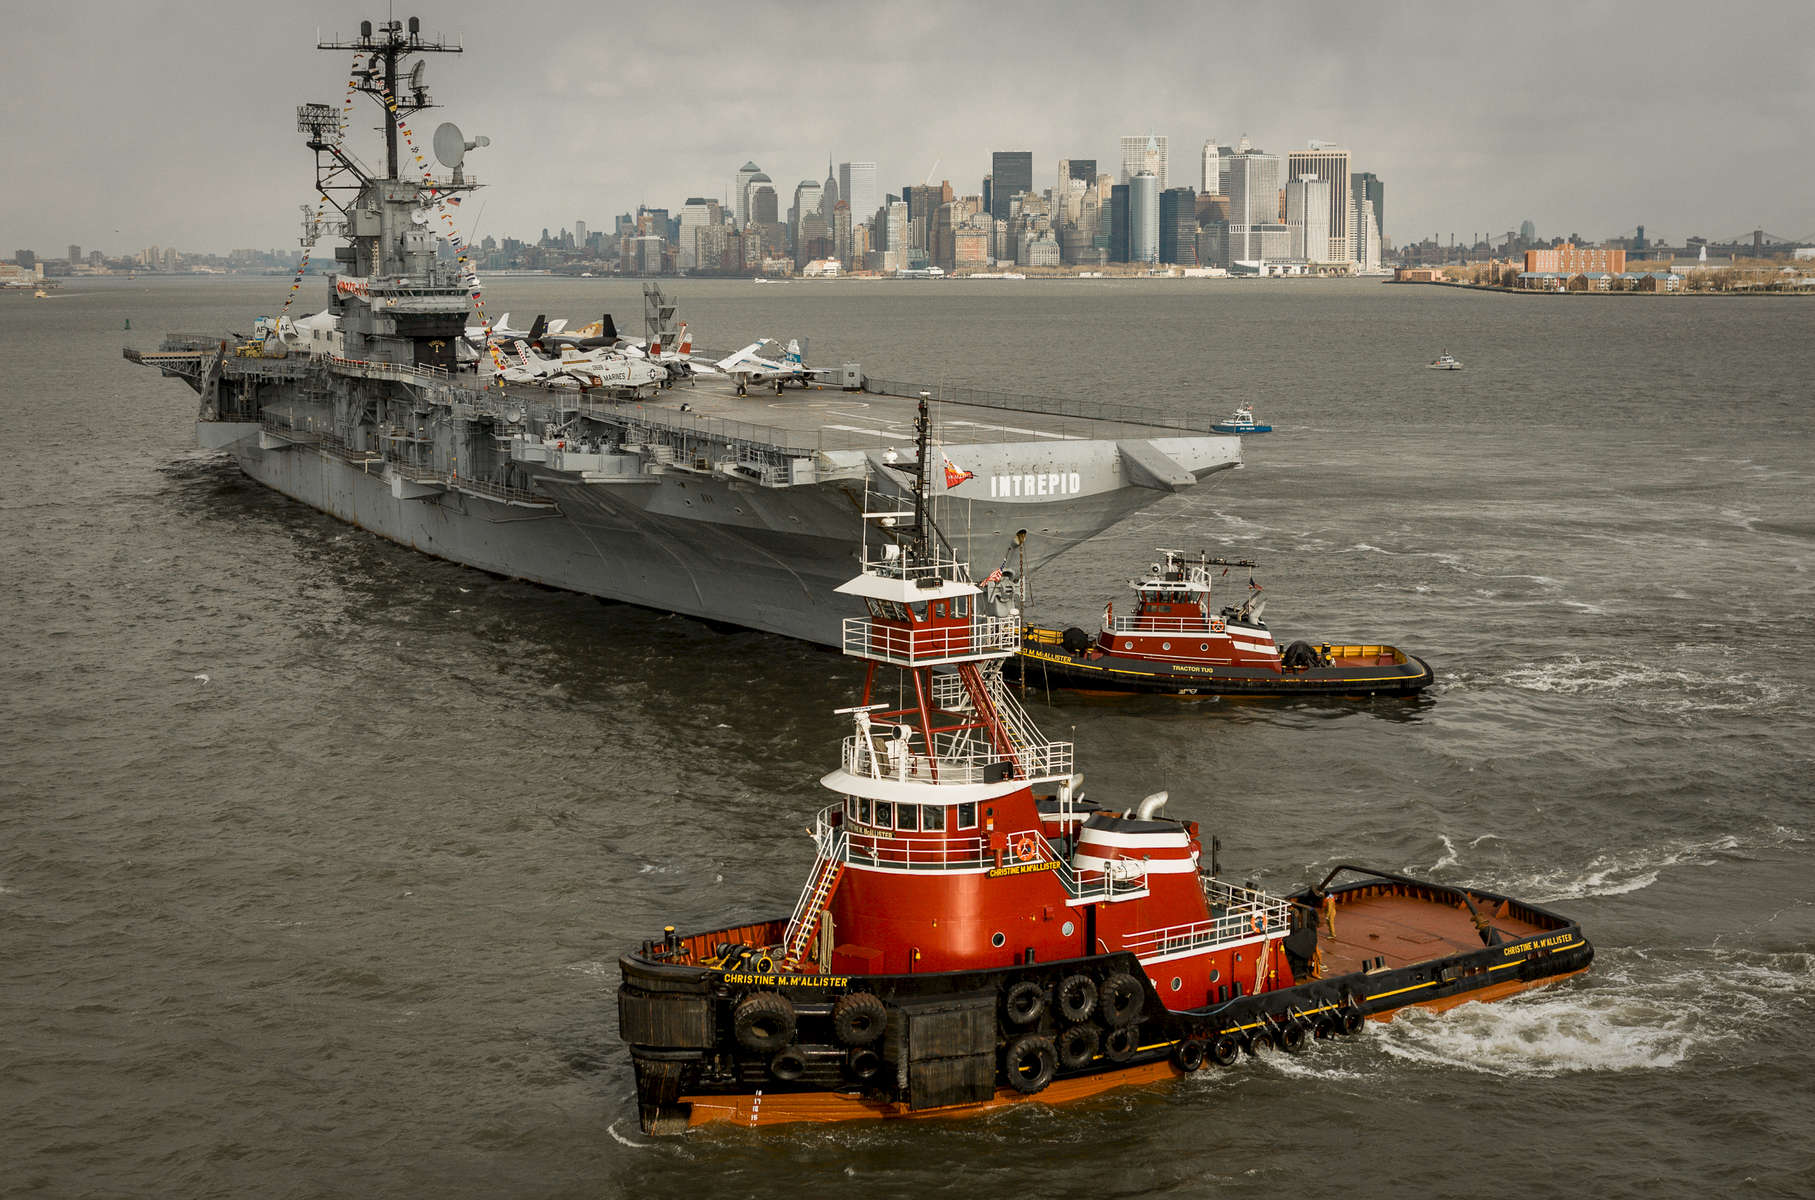 McAllister Towing pulls aircraft carrier Intrepid from Manhattan to Bayonne. Photographs show 2nd and successful attempt to move Intrepid from NYC west side manhattan to Bayonne.  First Attempt was November 6, 2006 on the full moon.